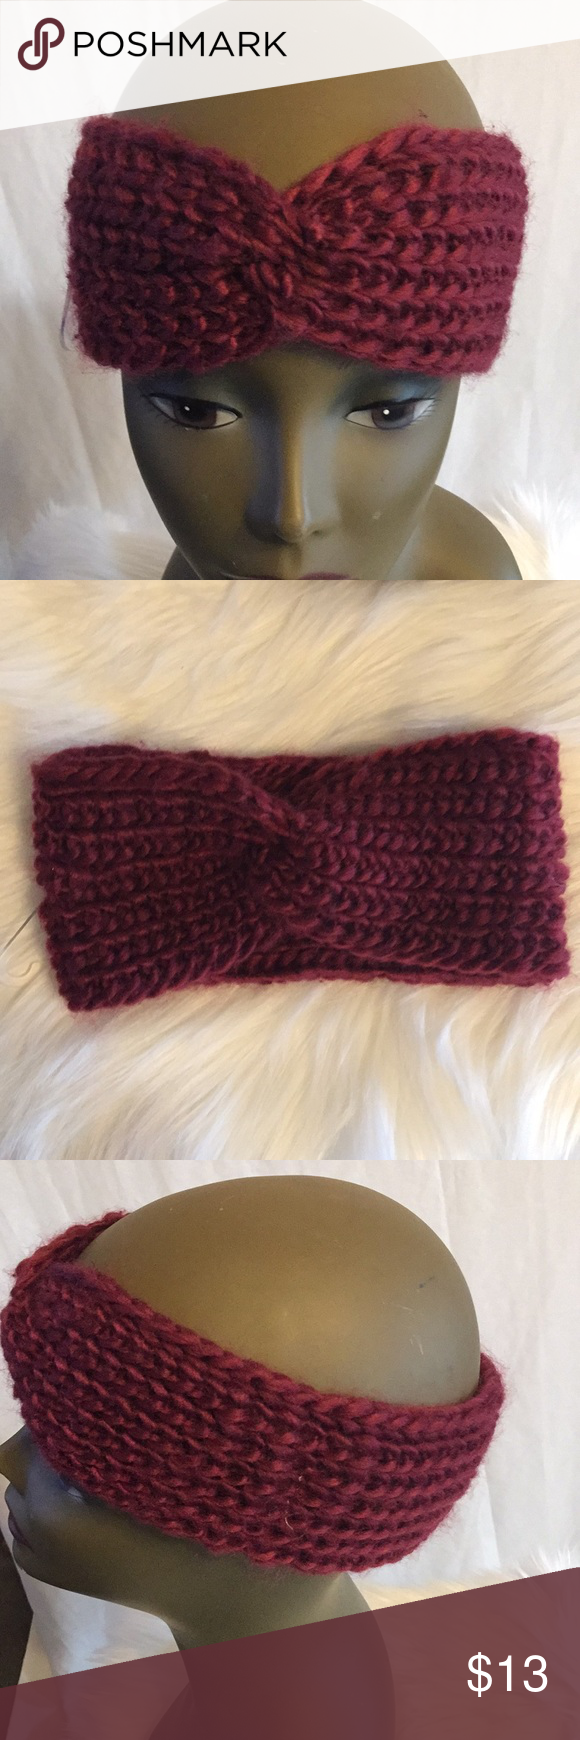 🔴BUY ONE GET ONEFREE Burgundy Headband War Warmer Make the most of your look with this burgundy soft to the touch knit Headband Ear Warmer 77% Acrylic 20% polyester 2% rubber 1% Spandex #poshmark #headband #earwarmer #passionofessense Passion of Essense Accessories Hats